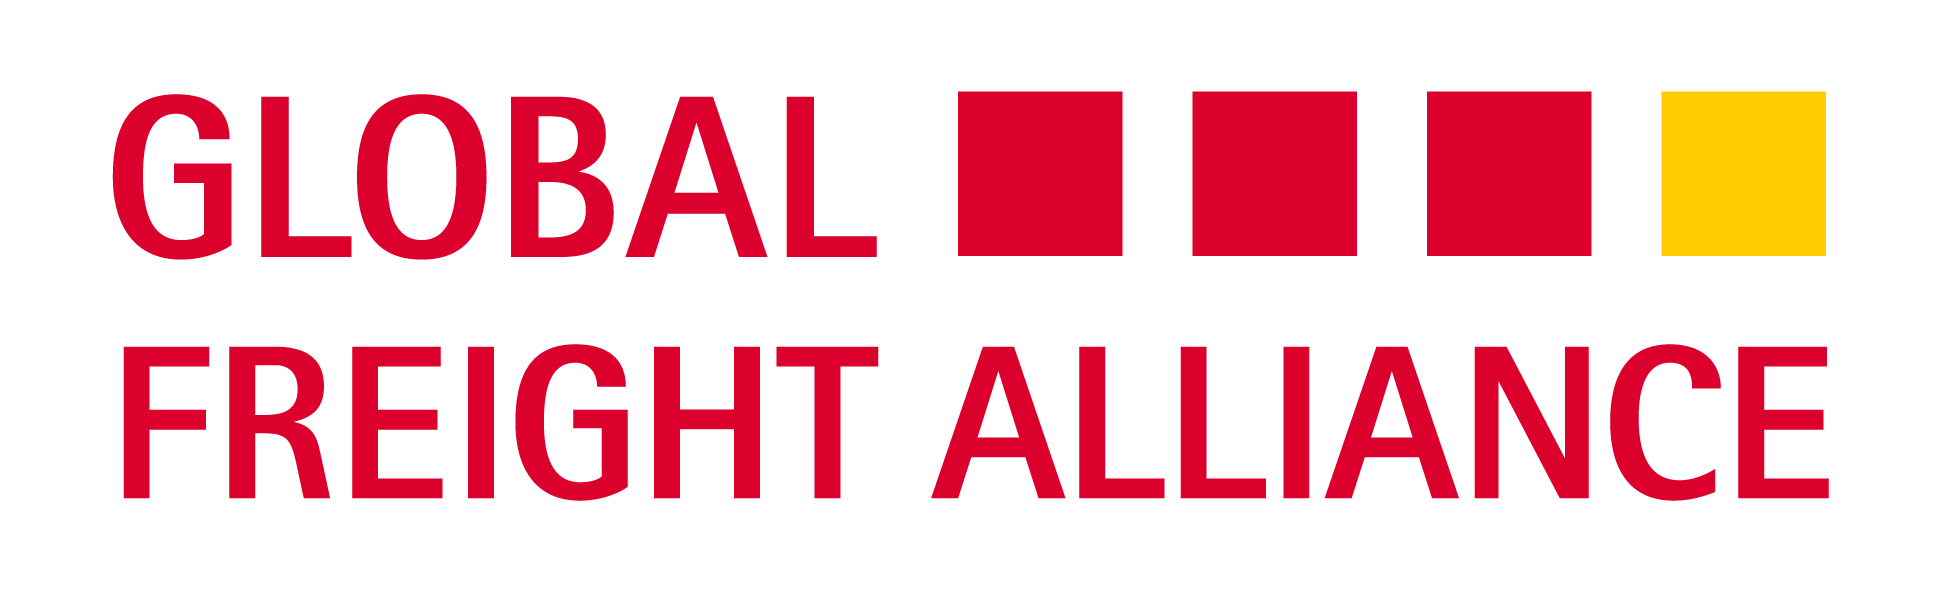 Global Freight Alliance, Logo